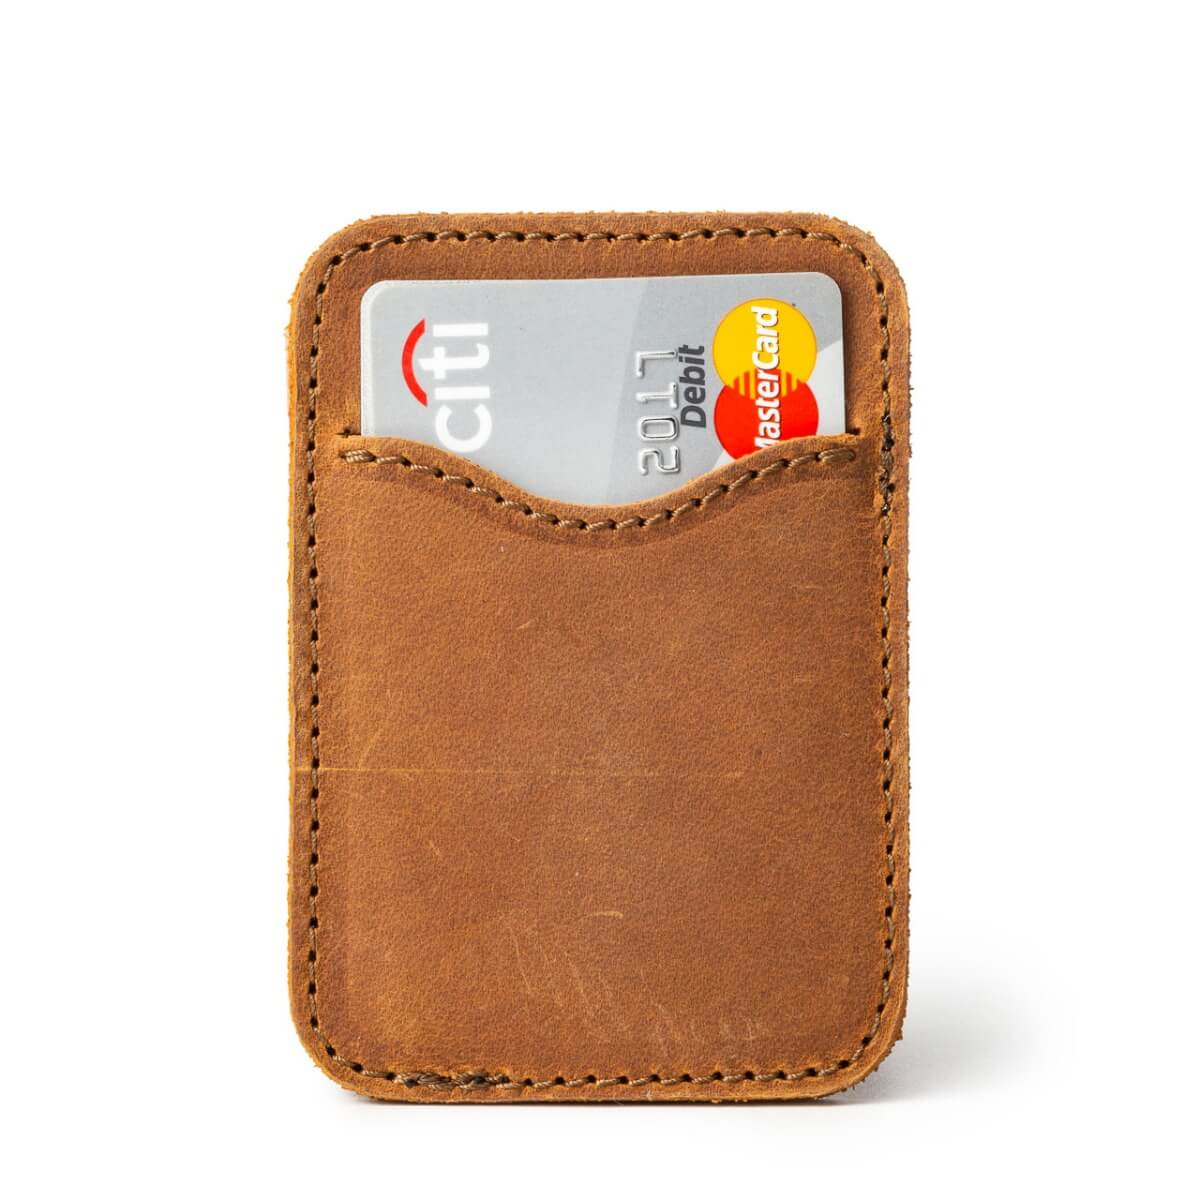 Saddleback Leather Card Wallet